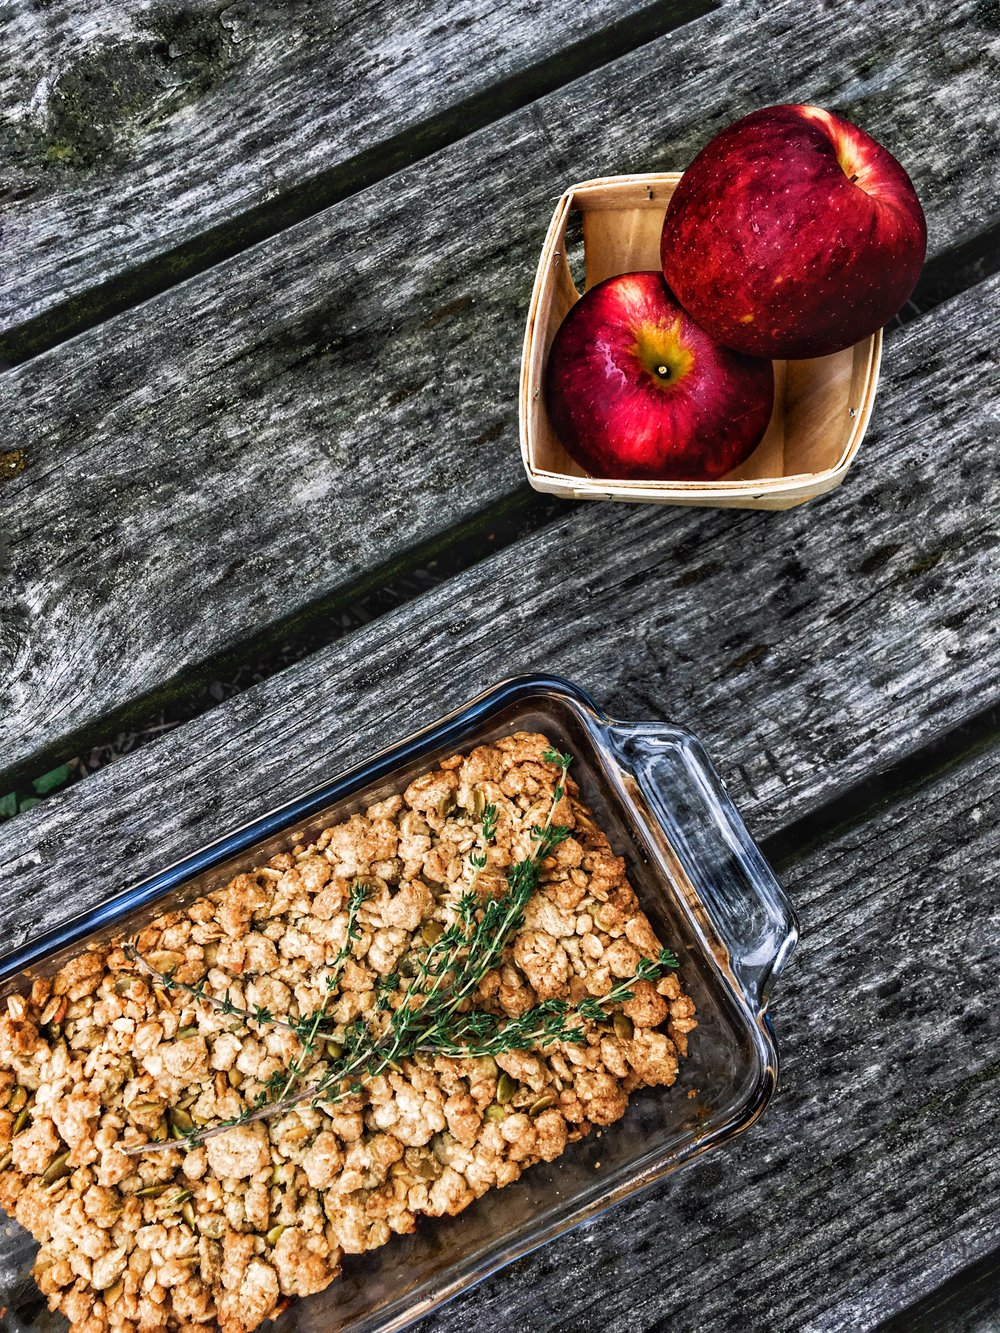 Brad & Butter | Pink Pearl Apple Crumble with Thyme & Pepitas